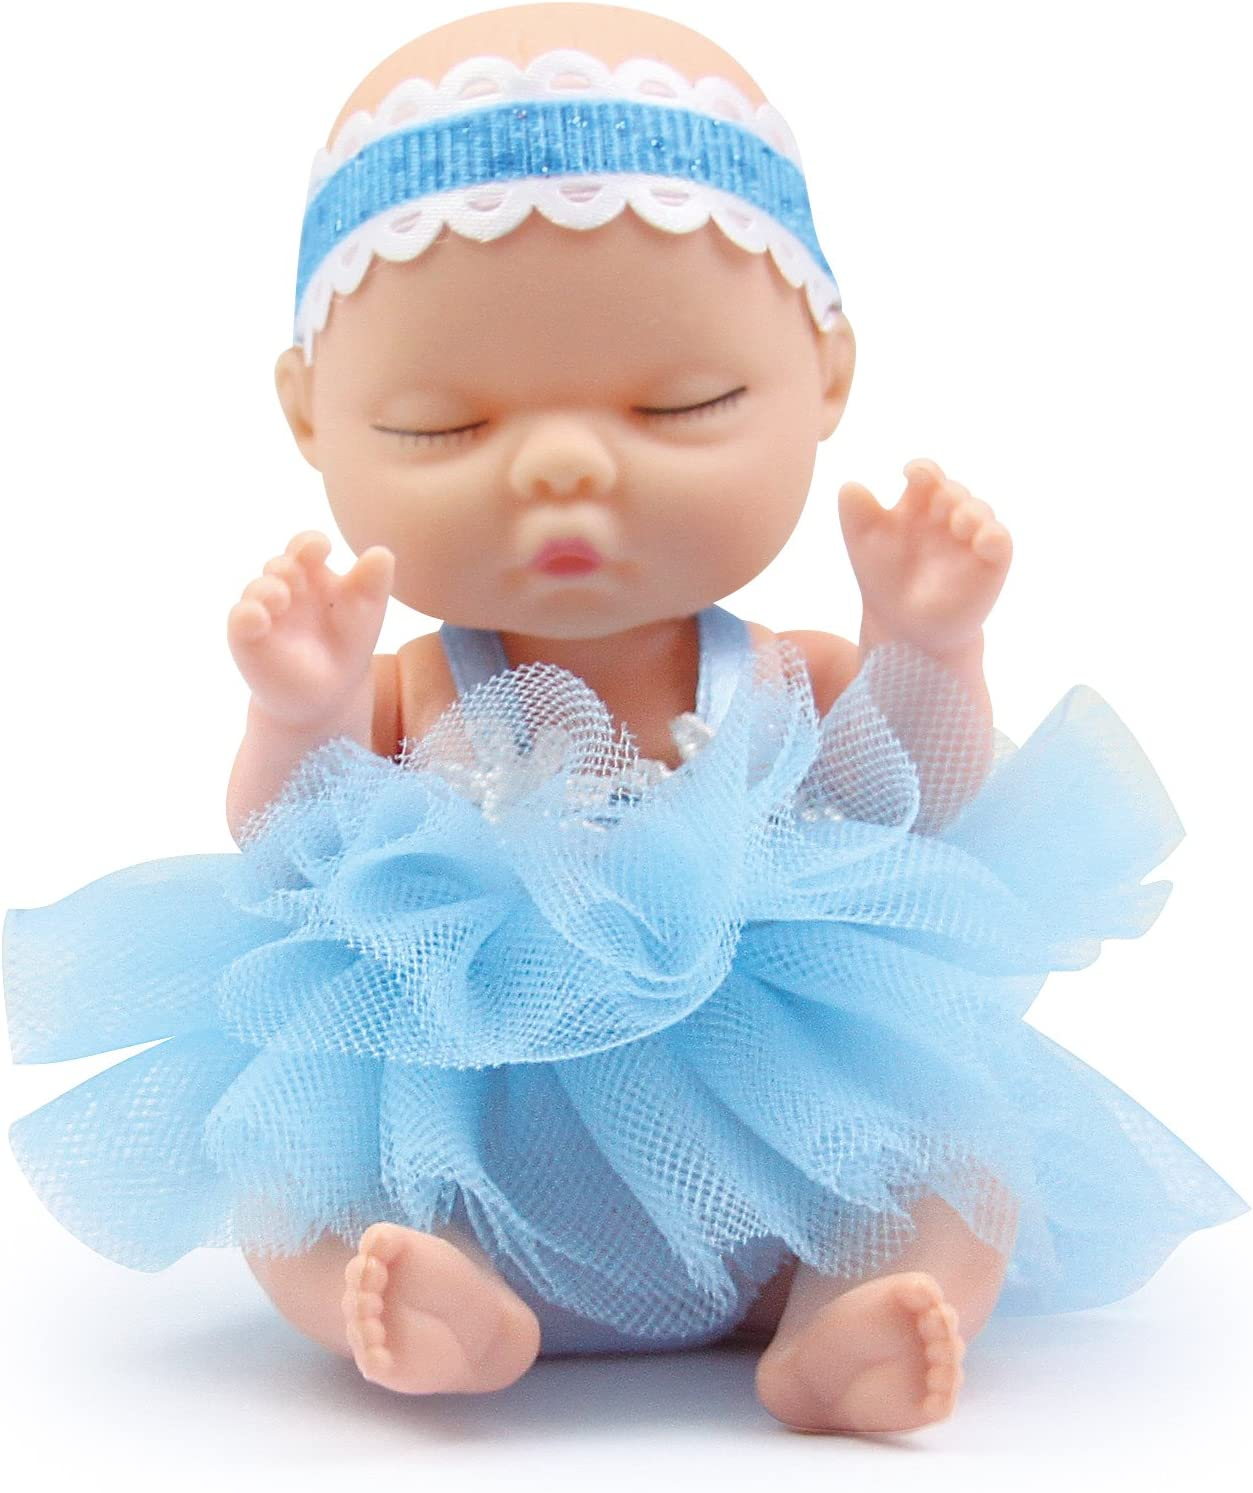 Brigamo Doll Surprise Cute Mini Baby Doll with Fluffy Fur Blanket in Decorative Ball